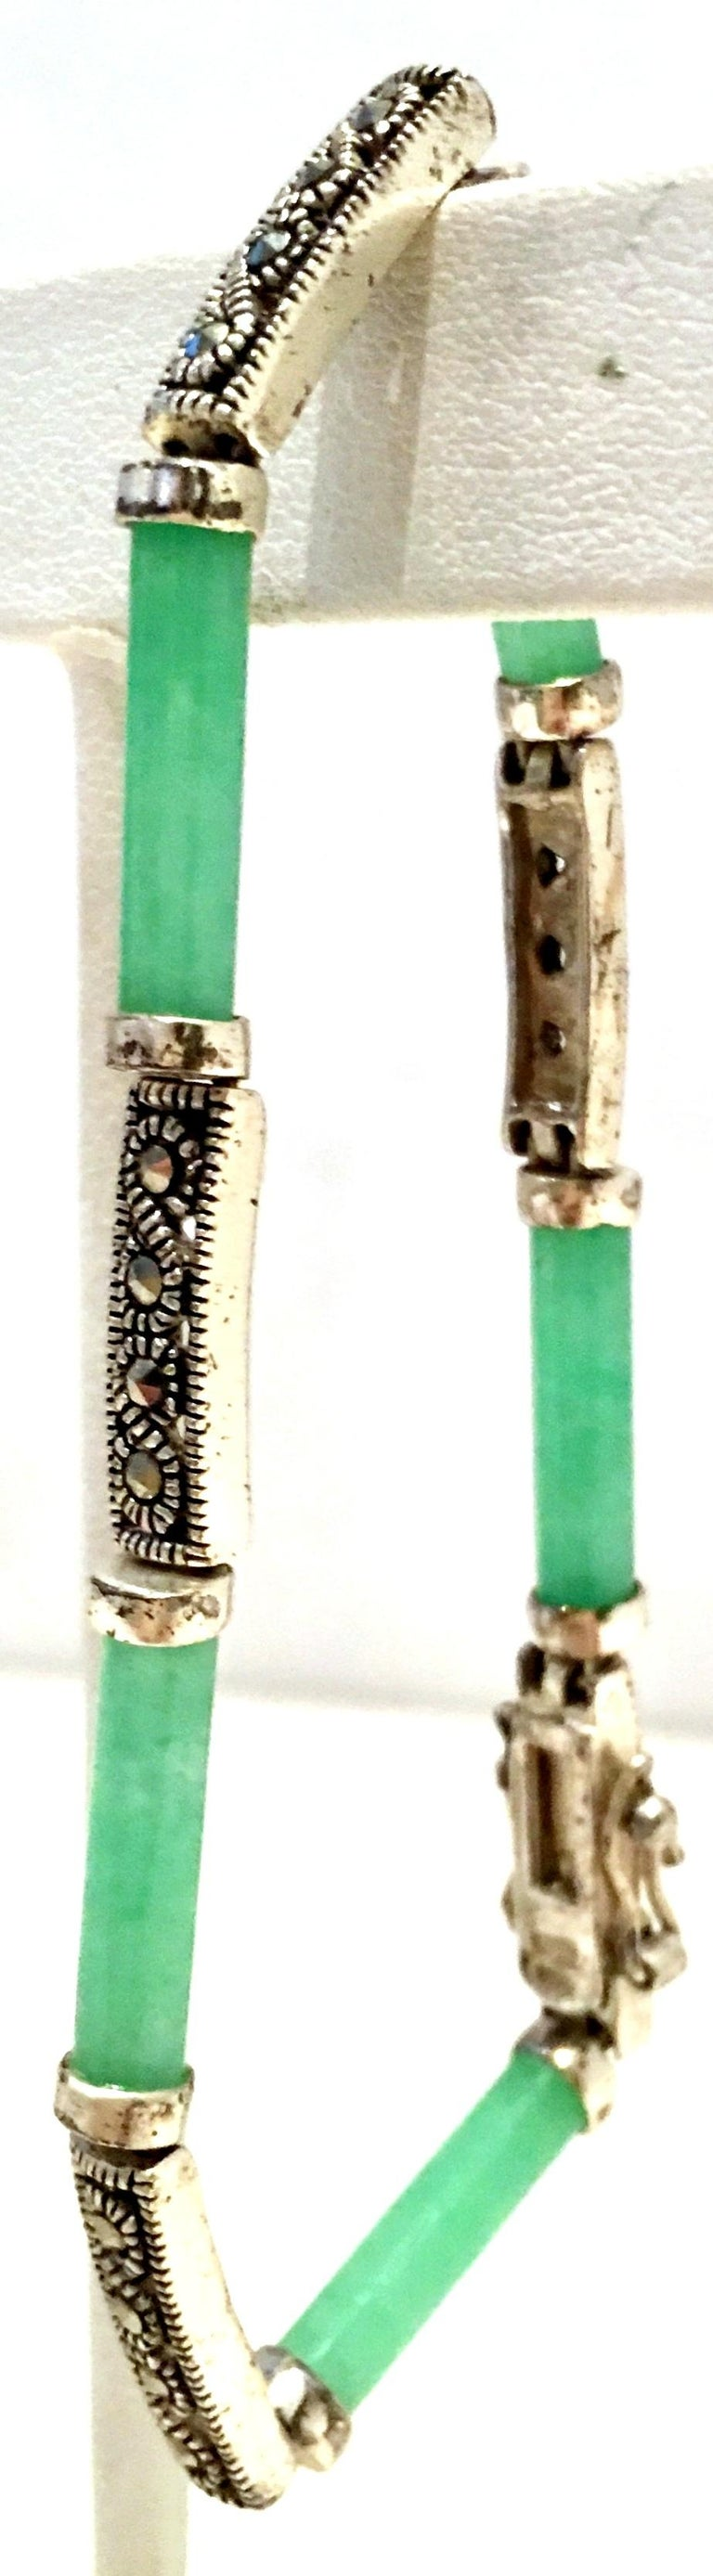 20th Century 925 Sterling Jadeite & Marcasite Link Bracelet In Good Condition For Sale In West Palm Beach, FL